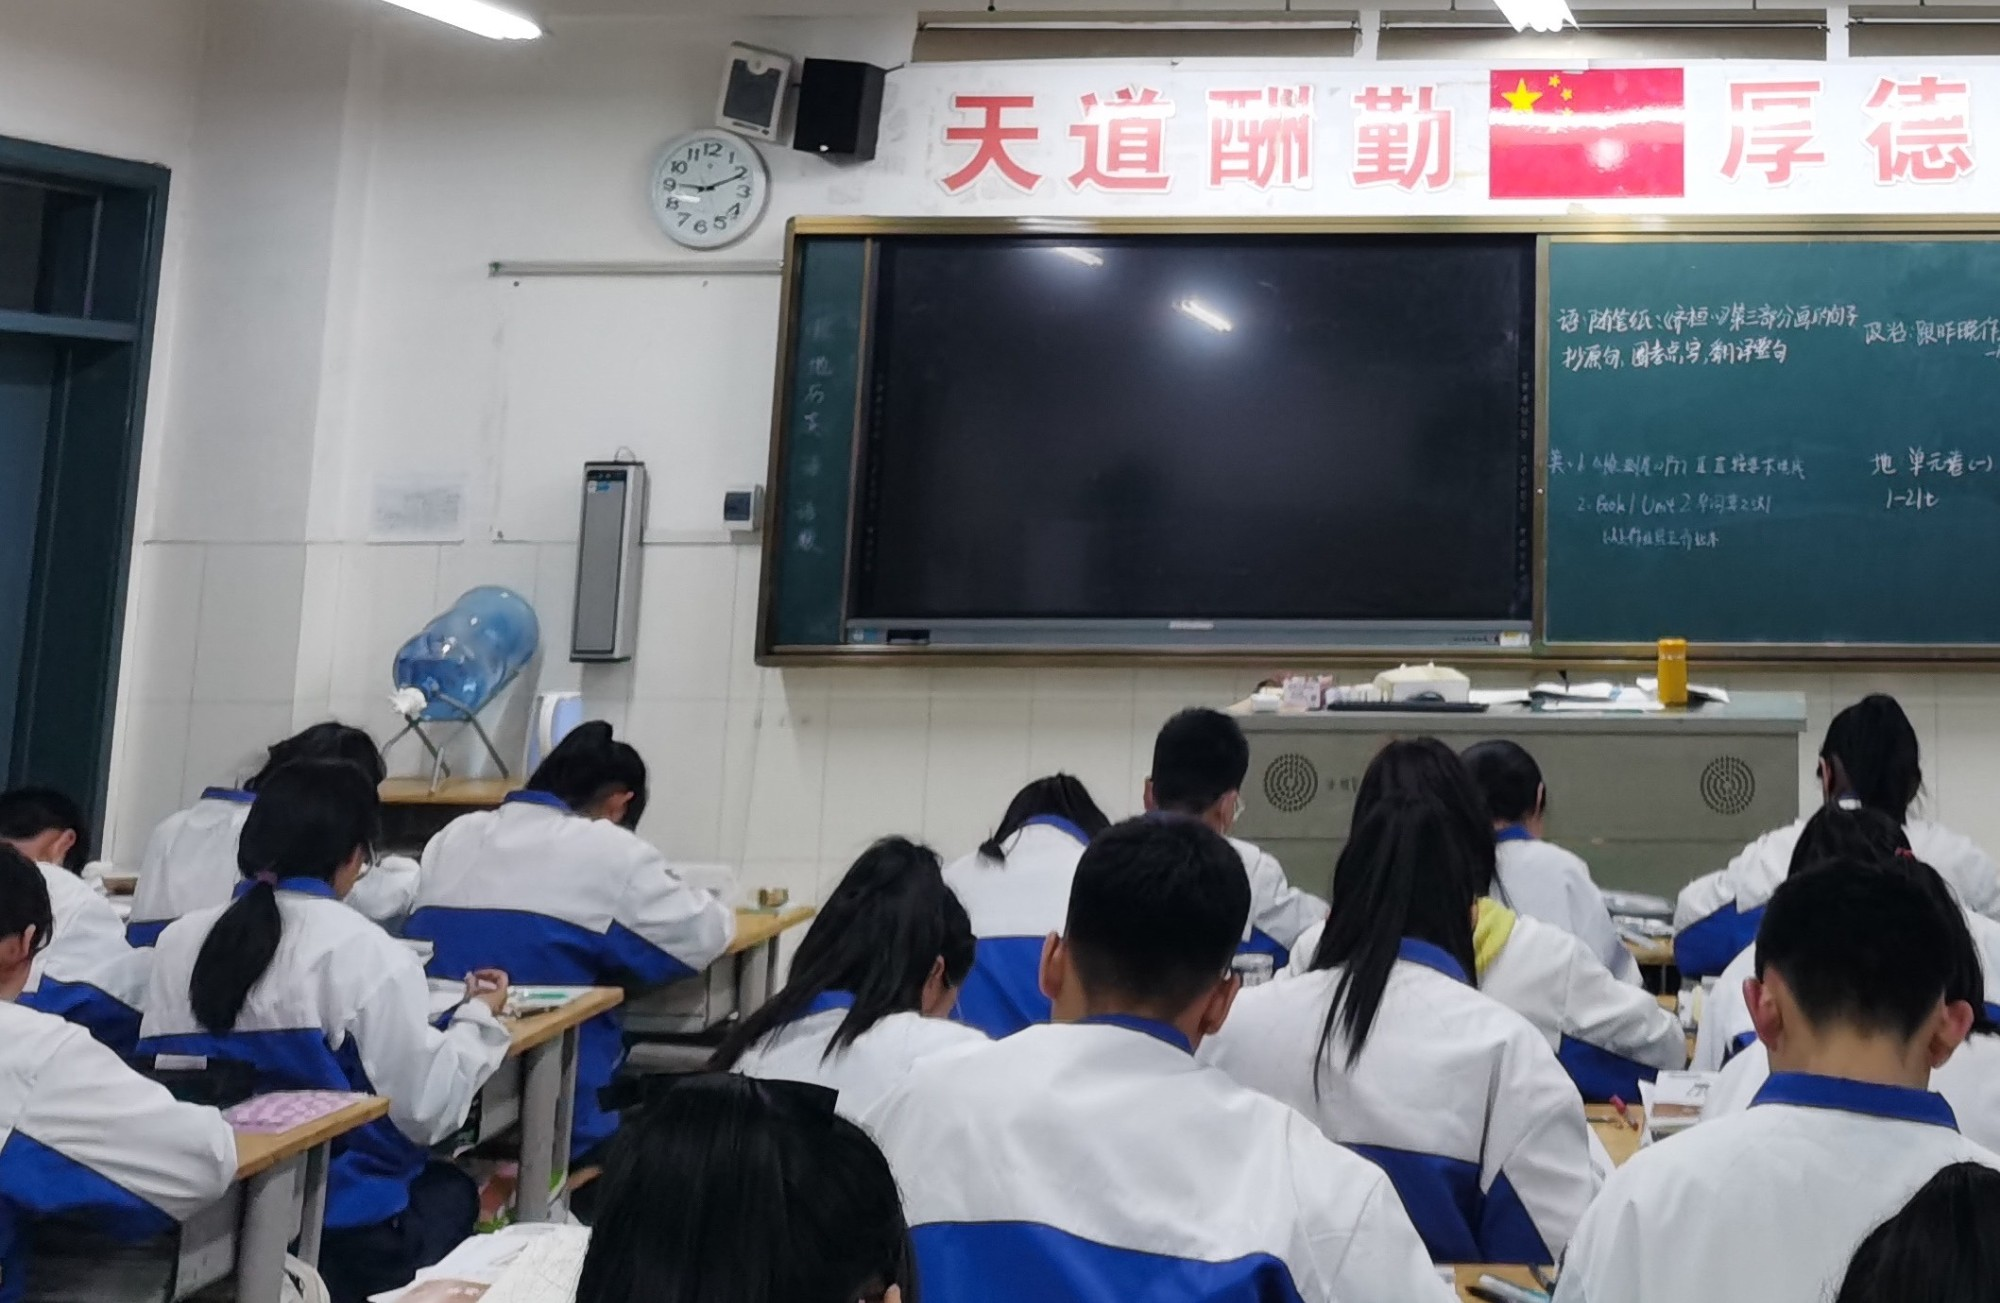 China Considers Dropping English as Core Subject, Again